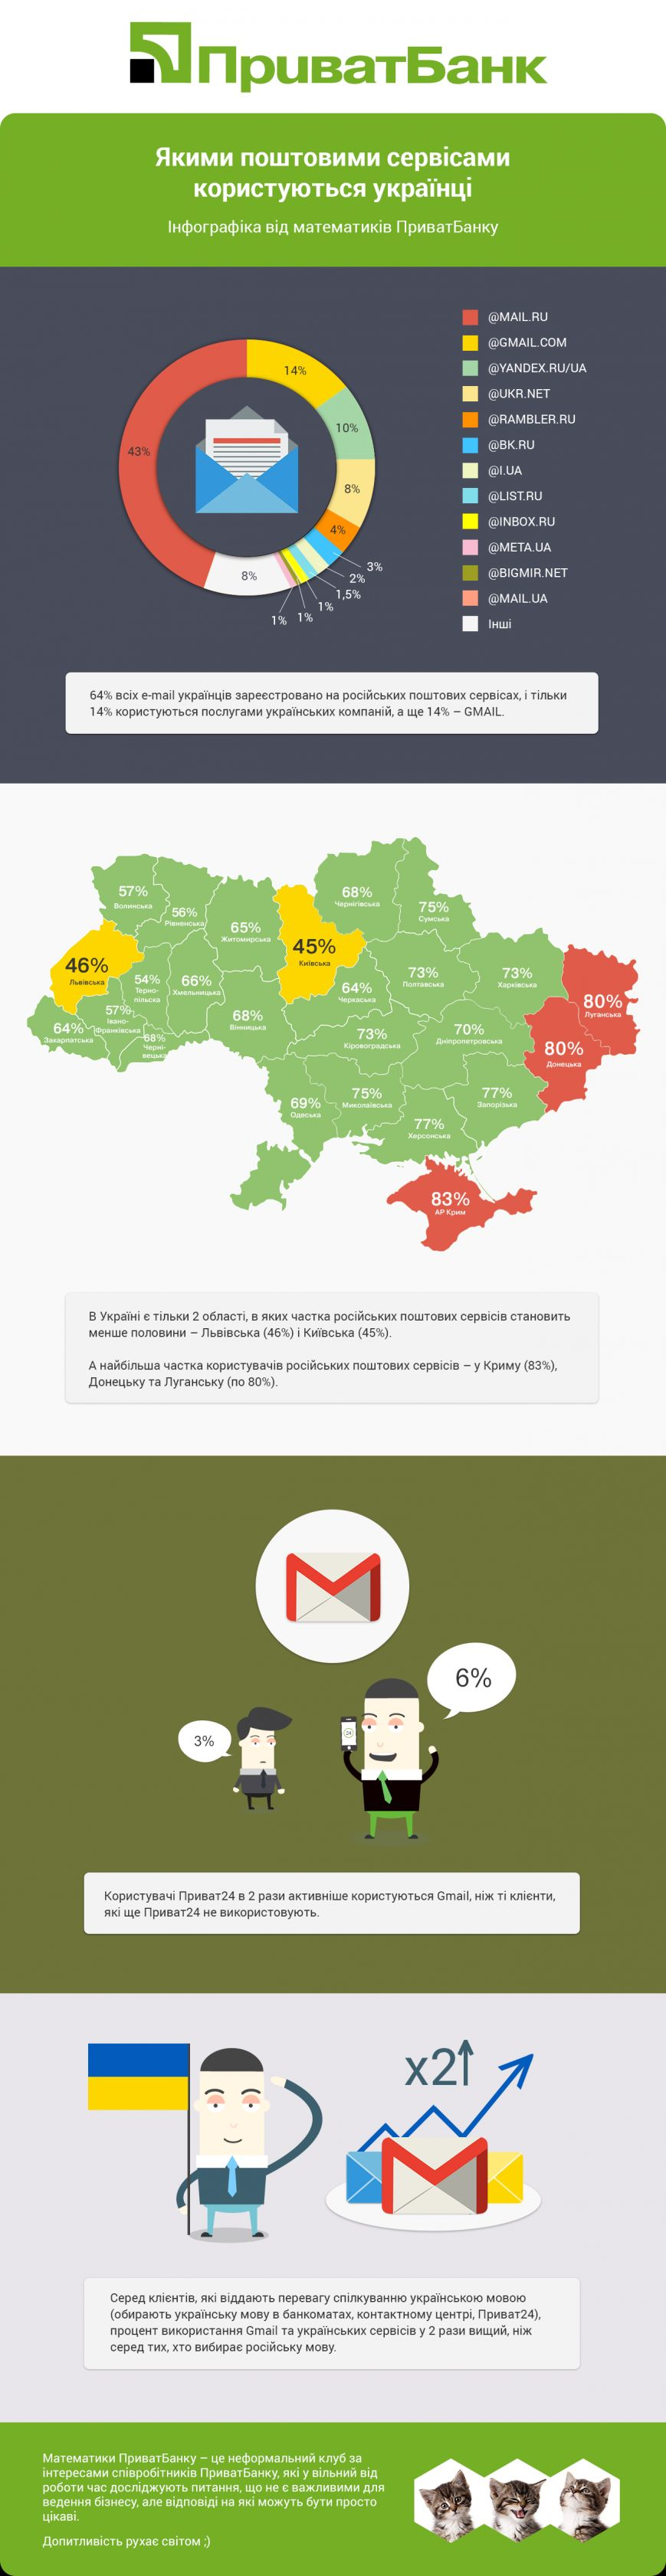 email-укр